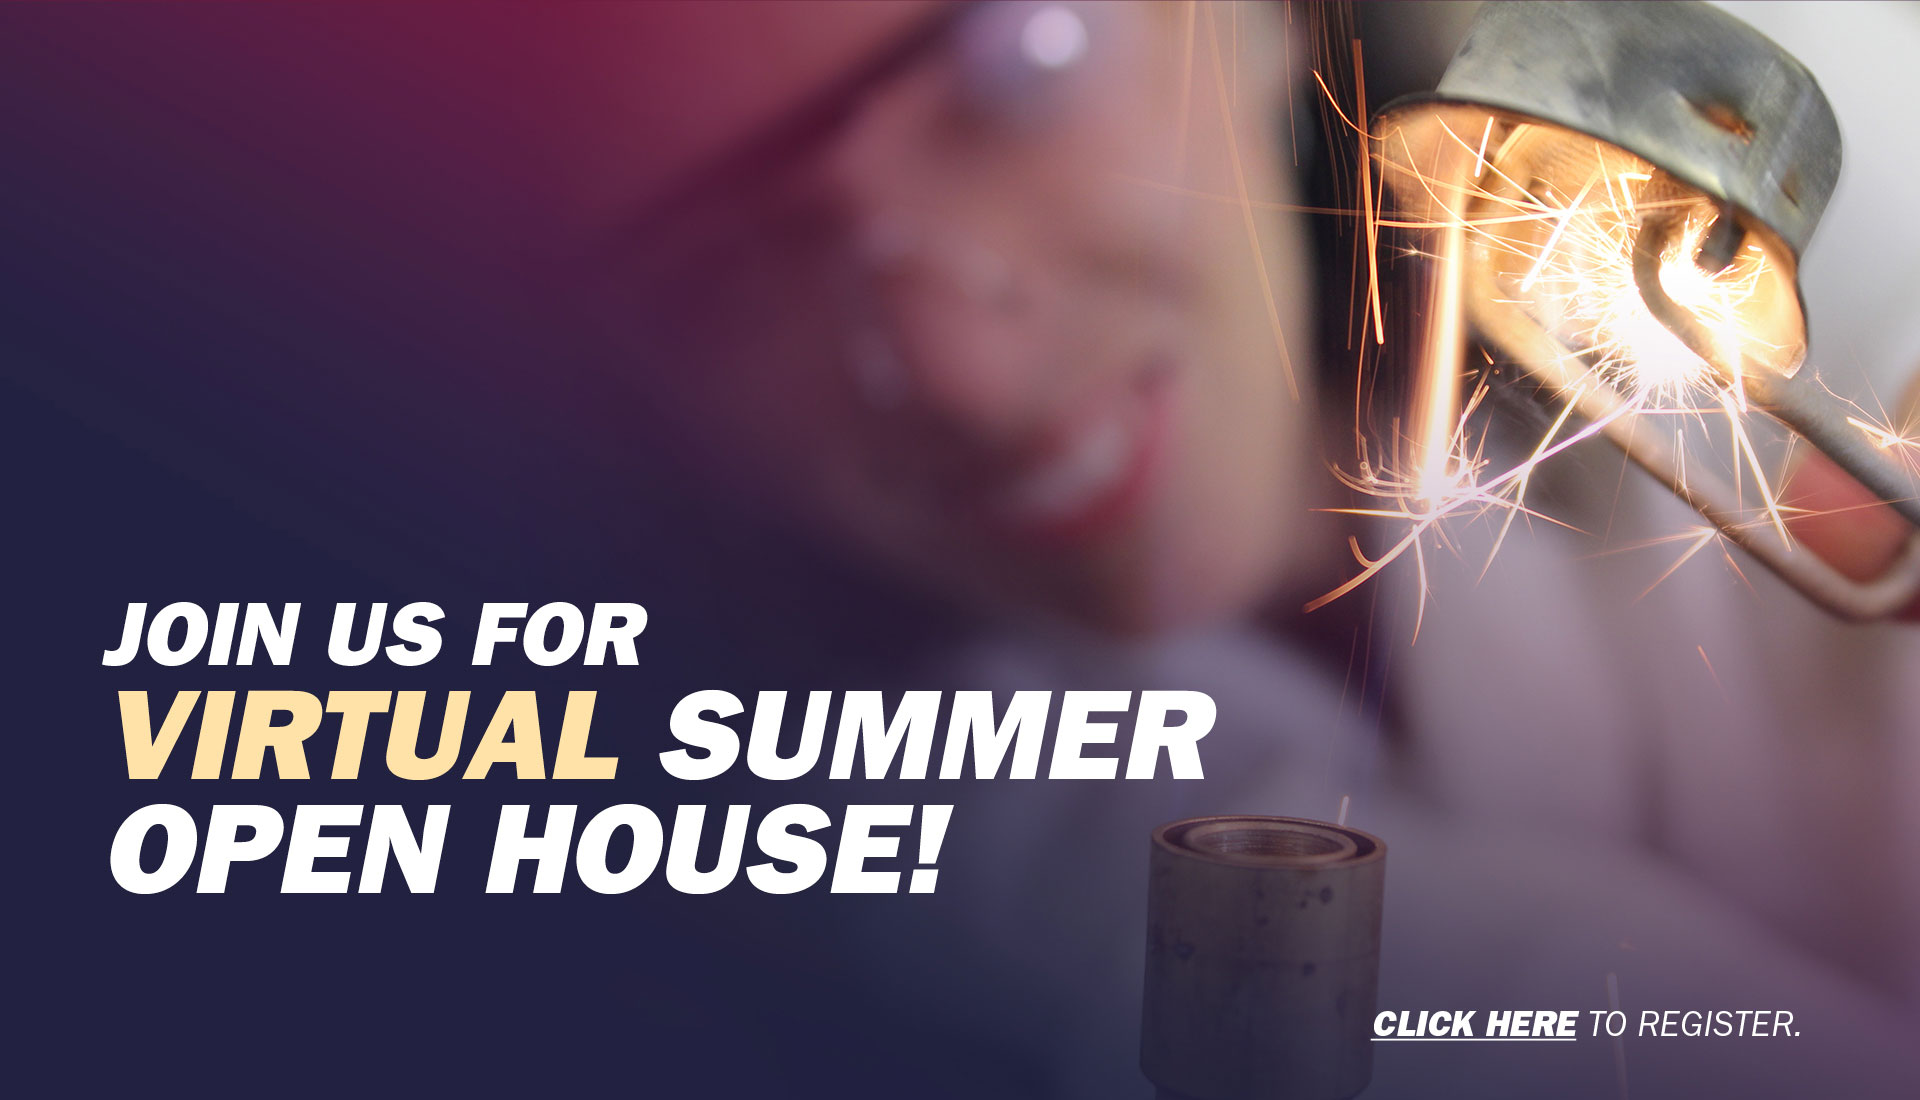 Join Us for Virtual Summer Open House. Click Here to Register.